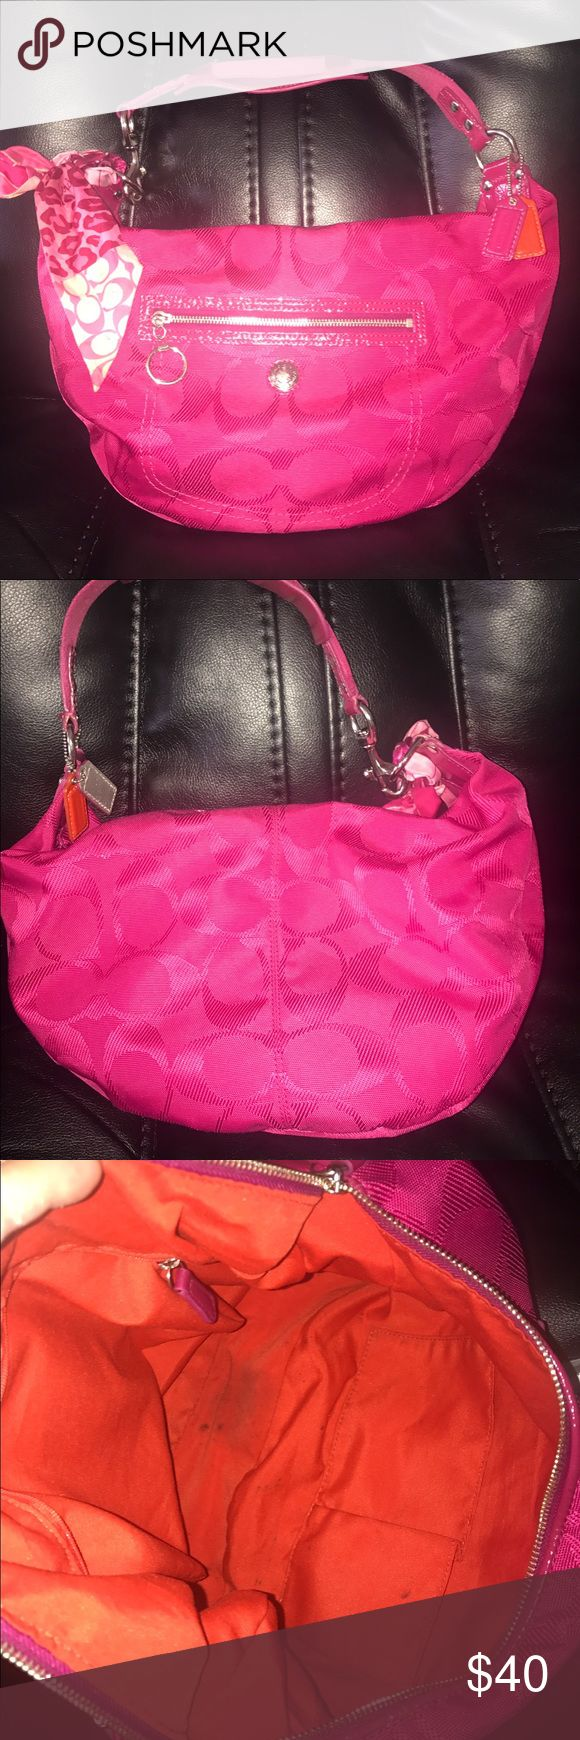 Authentic Coach hobo bag GUC. Has few Minimal frays  minor soiling inside and out. Approx 12 x 8 inches. Comes with ponytail scarf Coach Bags Hobos